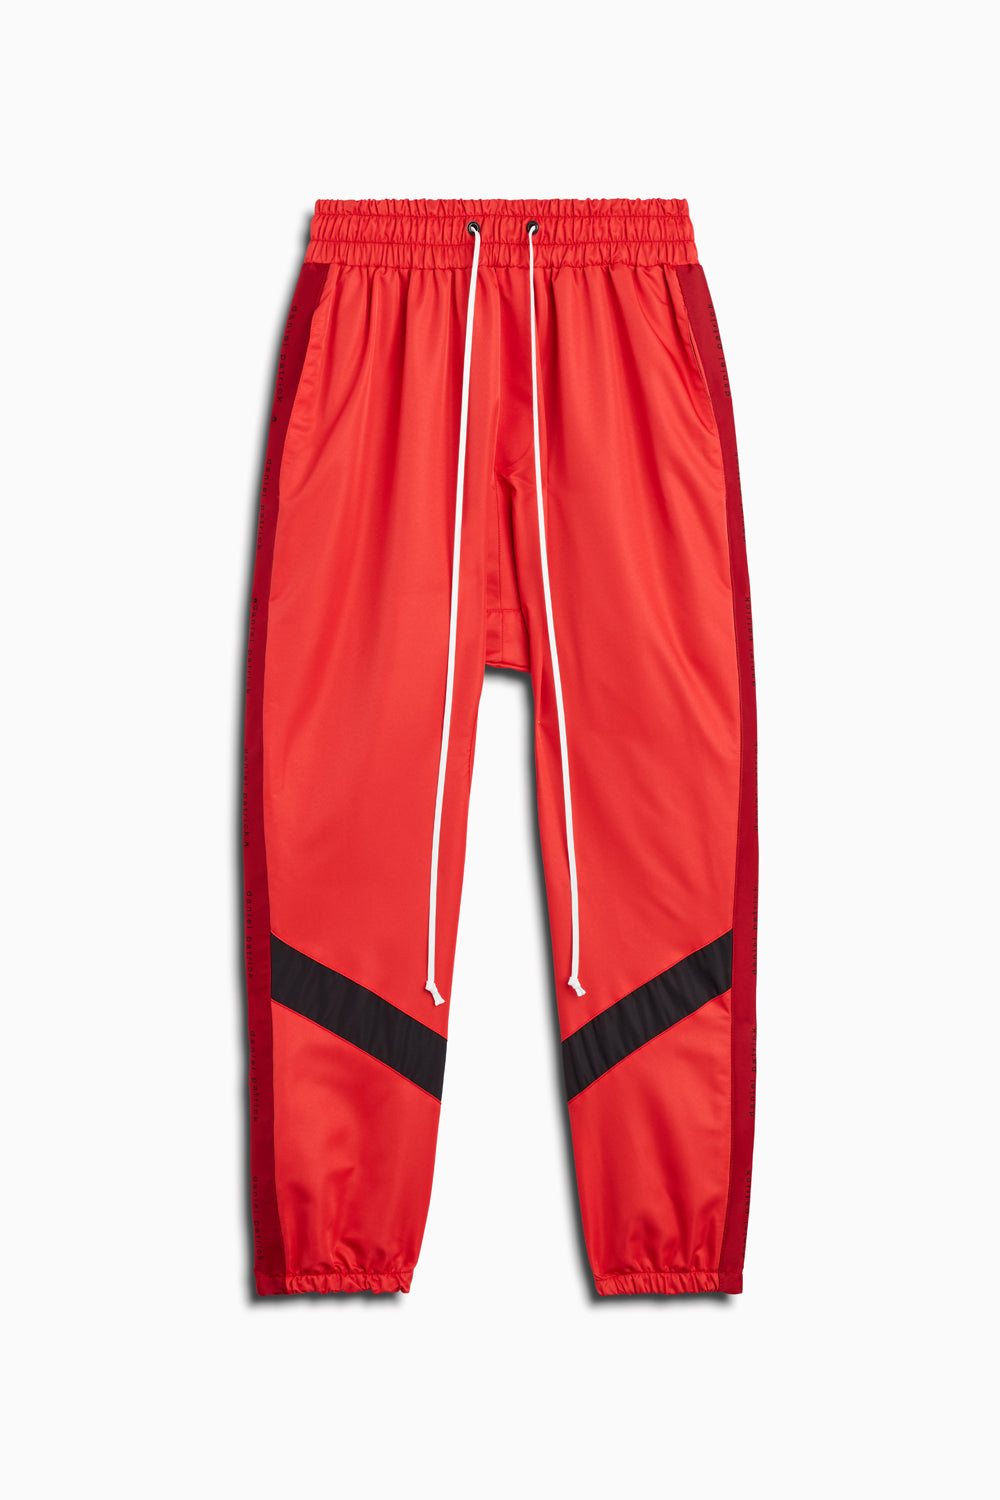 dp parachute track pant ii in red/black by daniel patrick